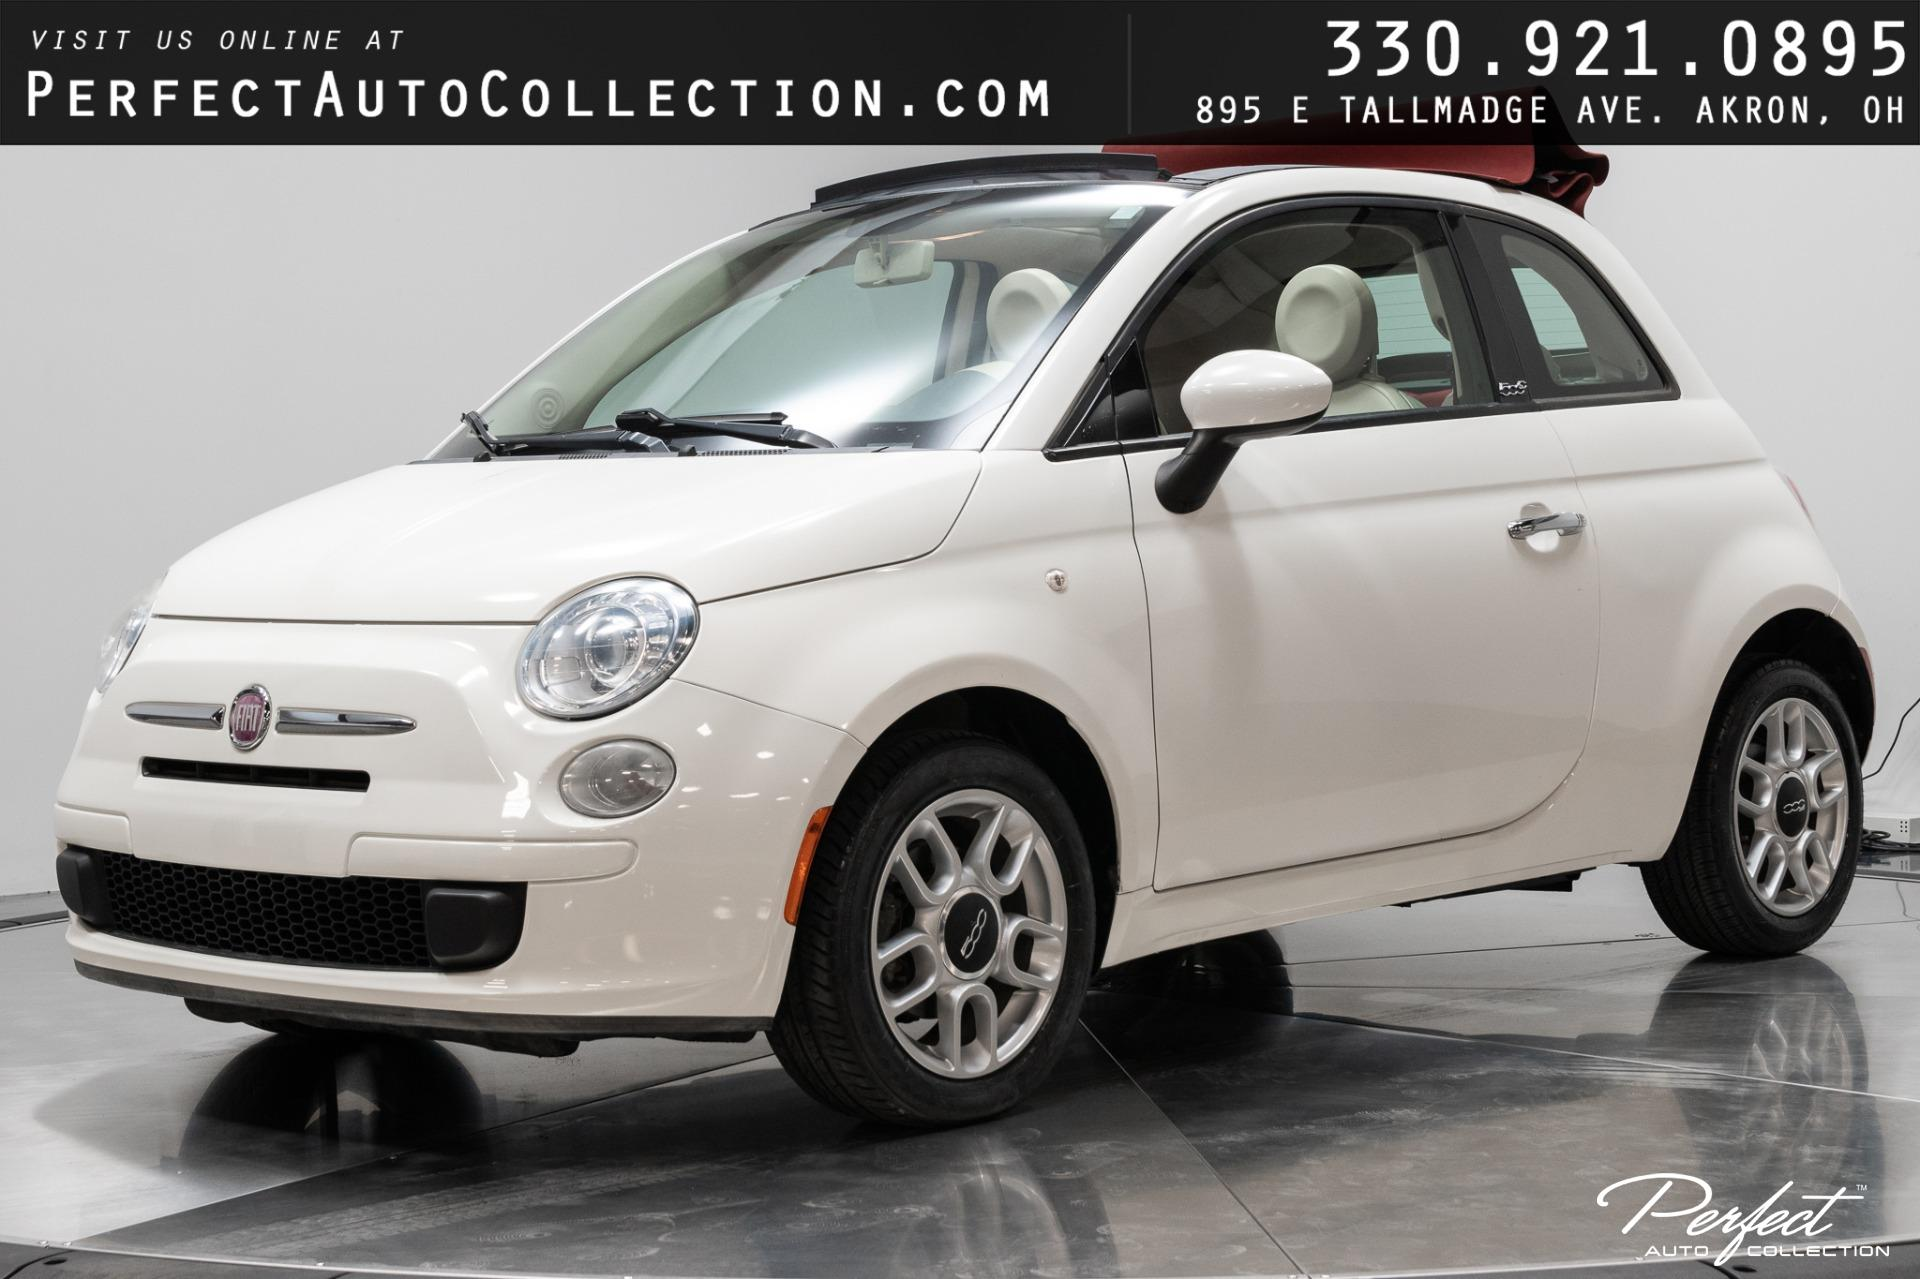 Used 2012 FIAT 500c Pop for sale $10,293 at Perfect Auto Collection in Akron OH 44310 1